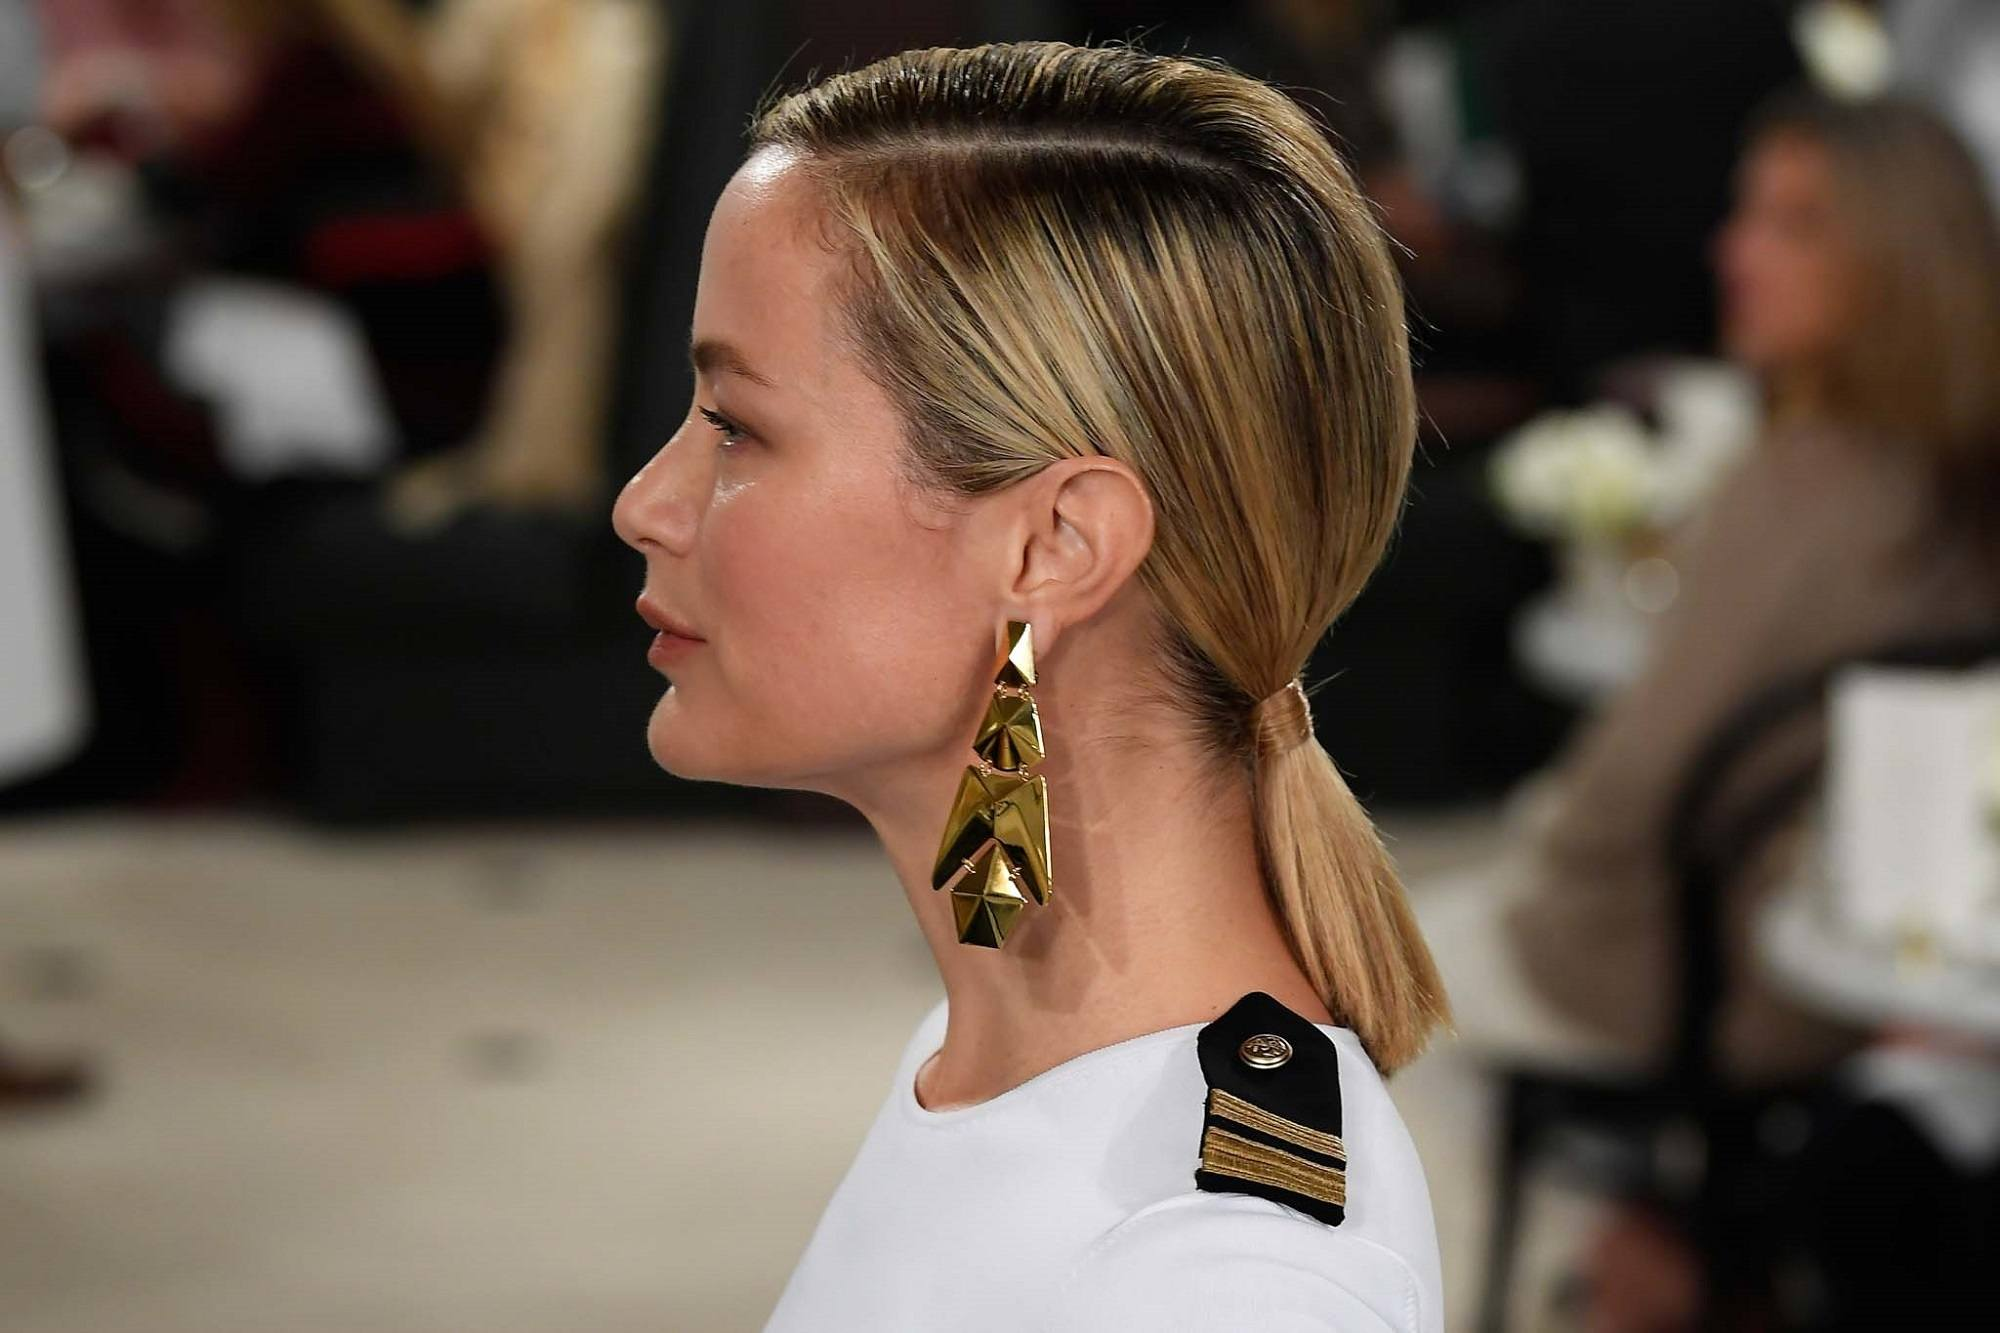 New York Fashion Week Hair: Side view shot of a woman with straight blonde hair in a ponytail wearing big earrings and white top